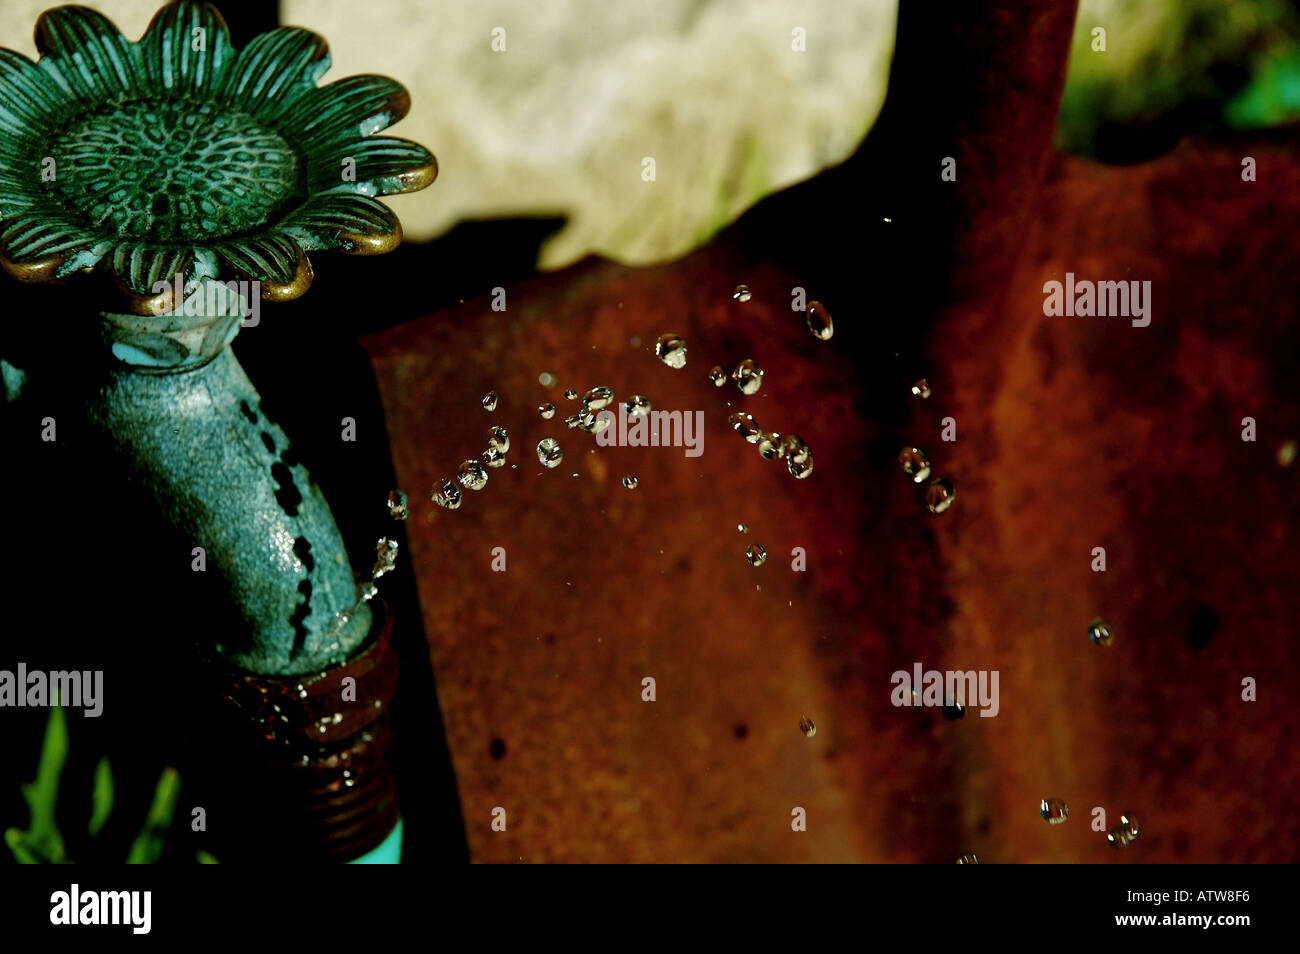 Springs a Leak - Copper Faucet, Hose, & Rusty Shovel Stock Photo